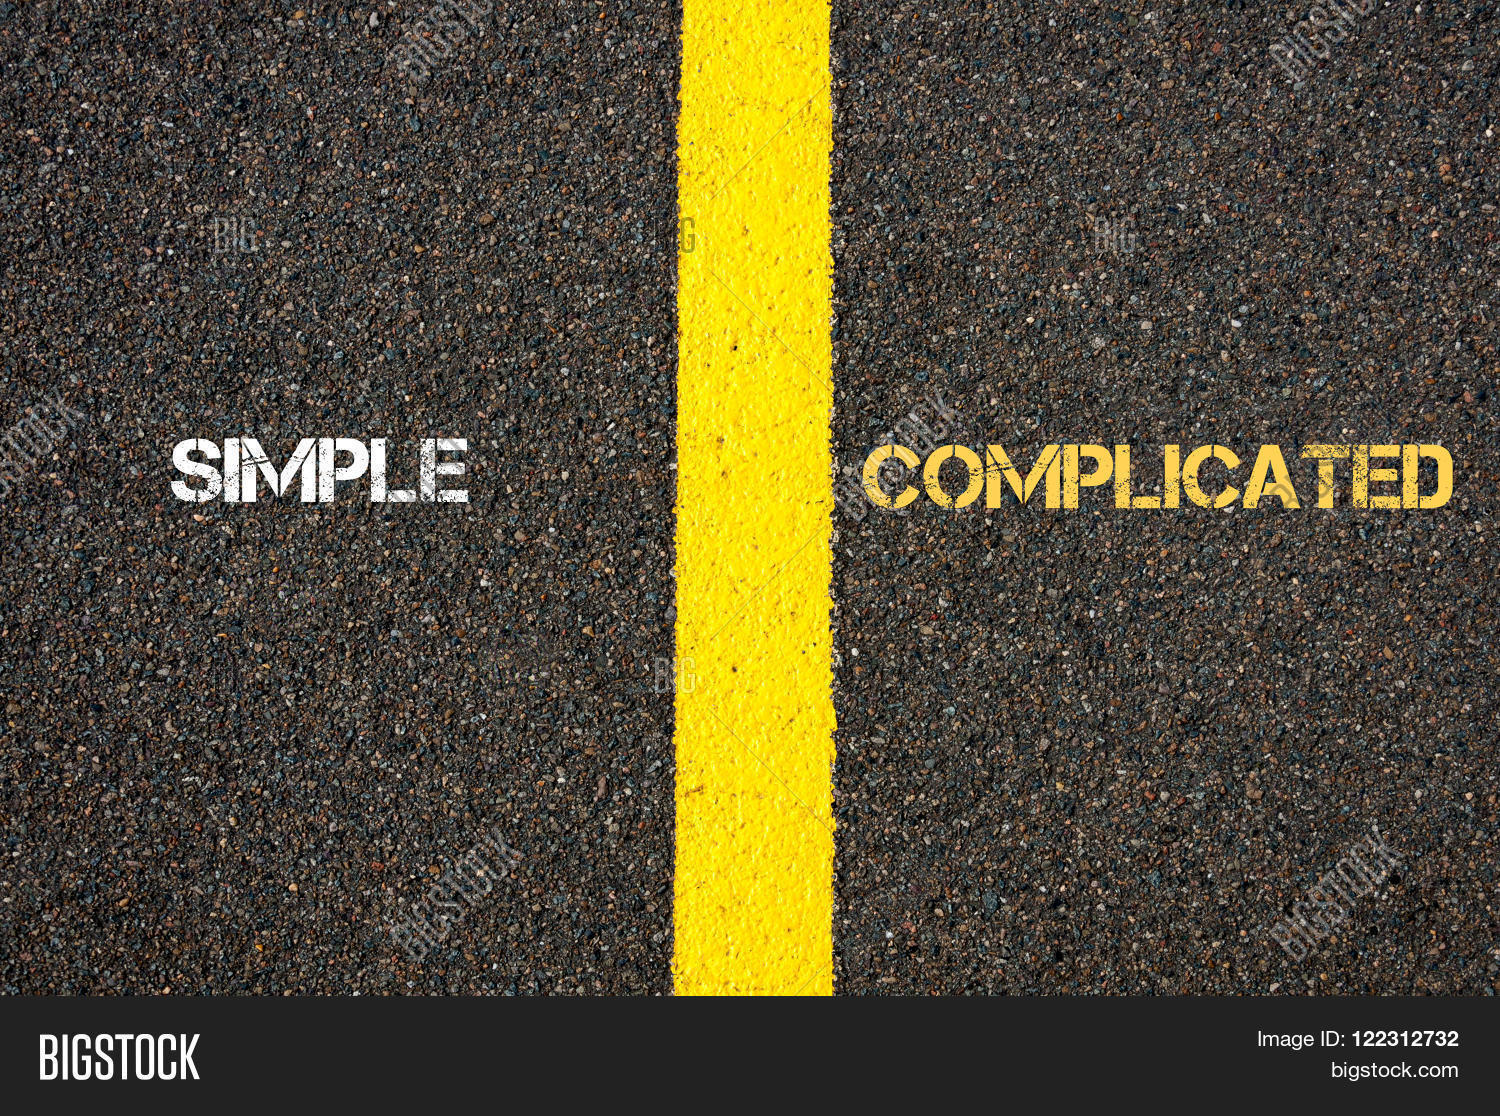 Worksheet Antonym For Simple antonym concept of simple versus complicated stock photo complicated